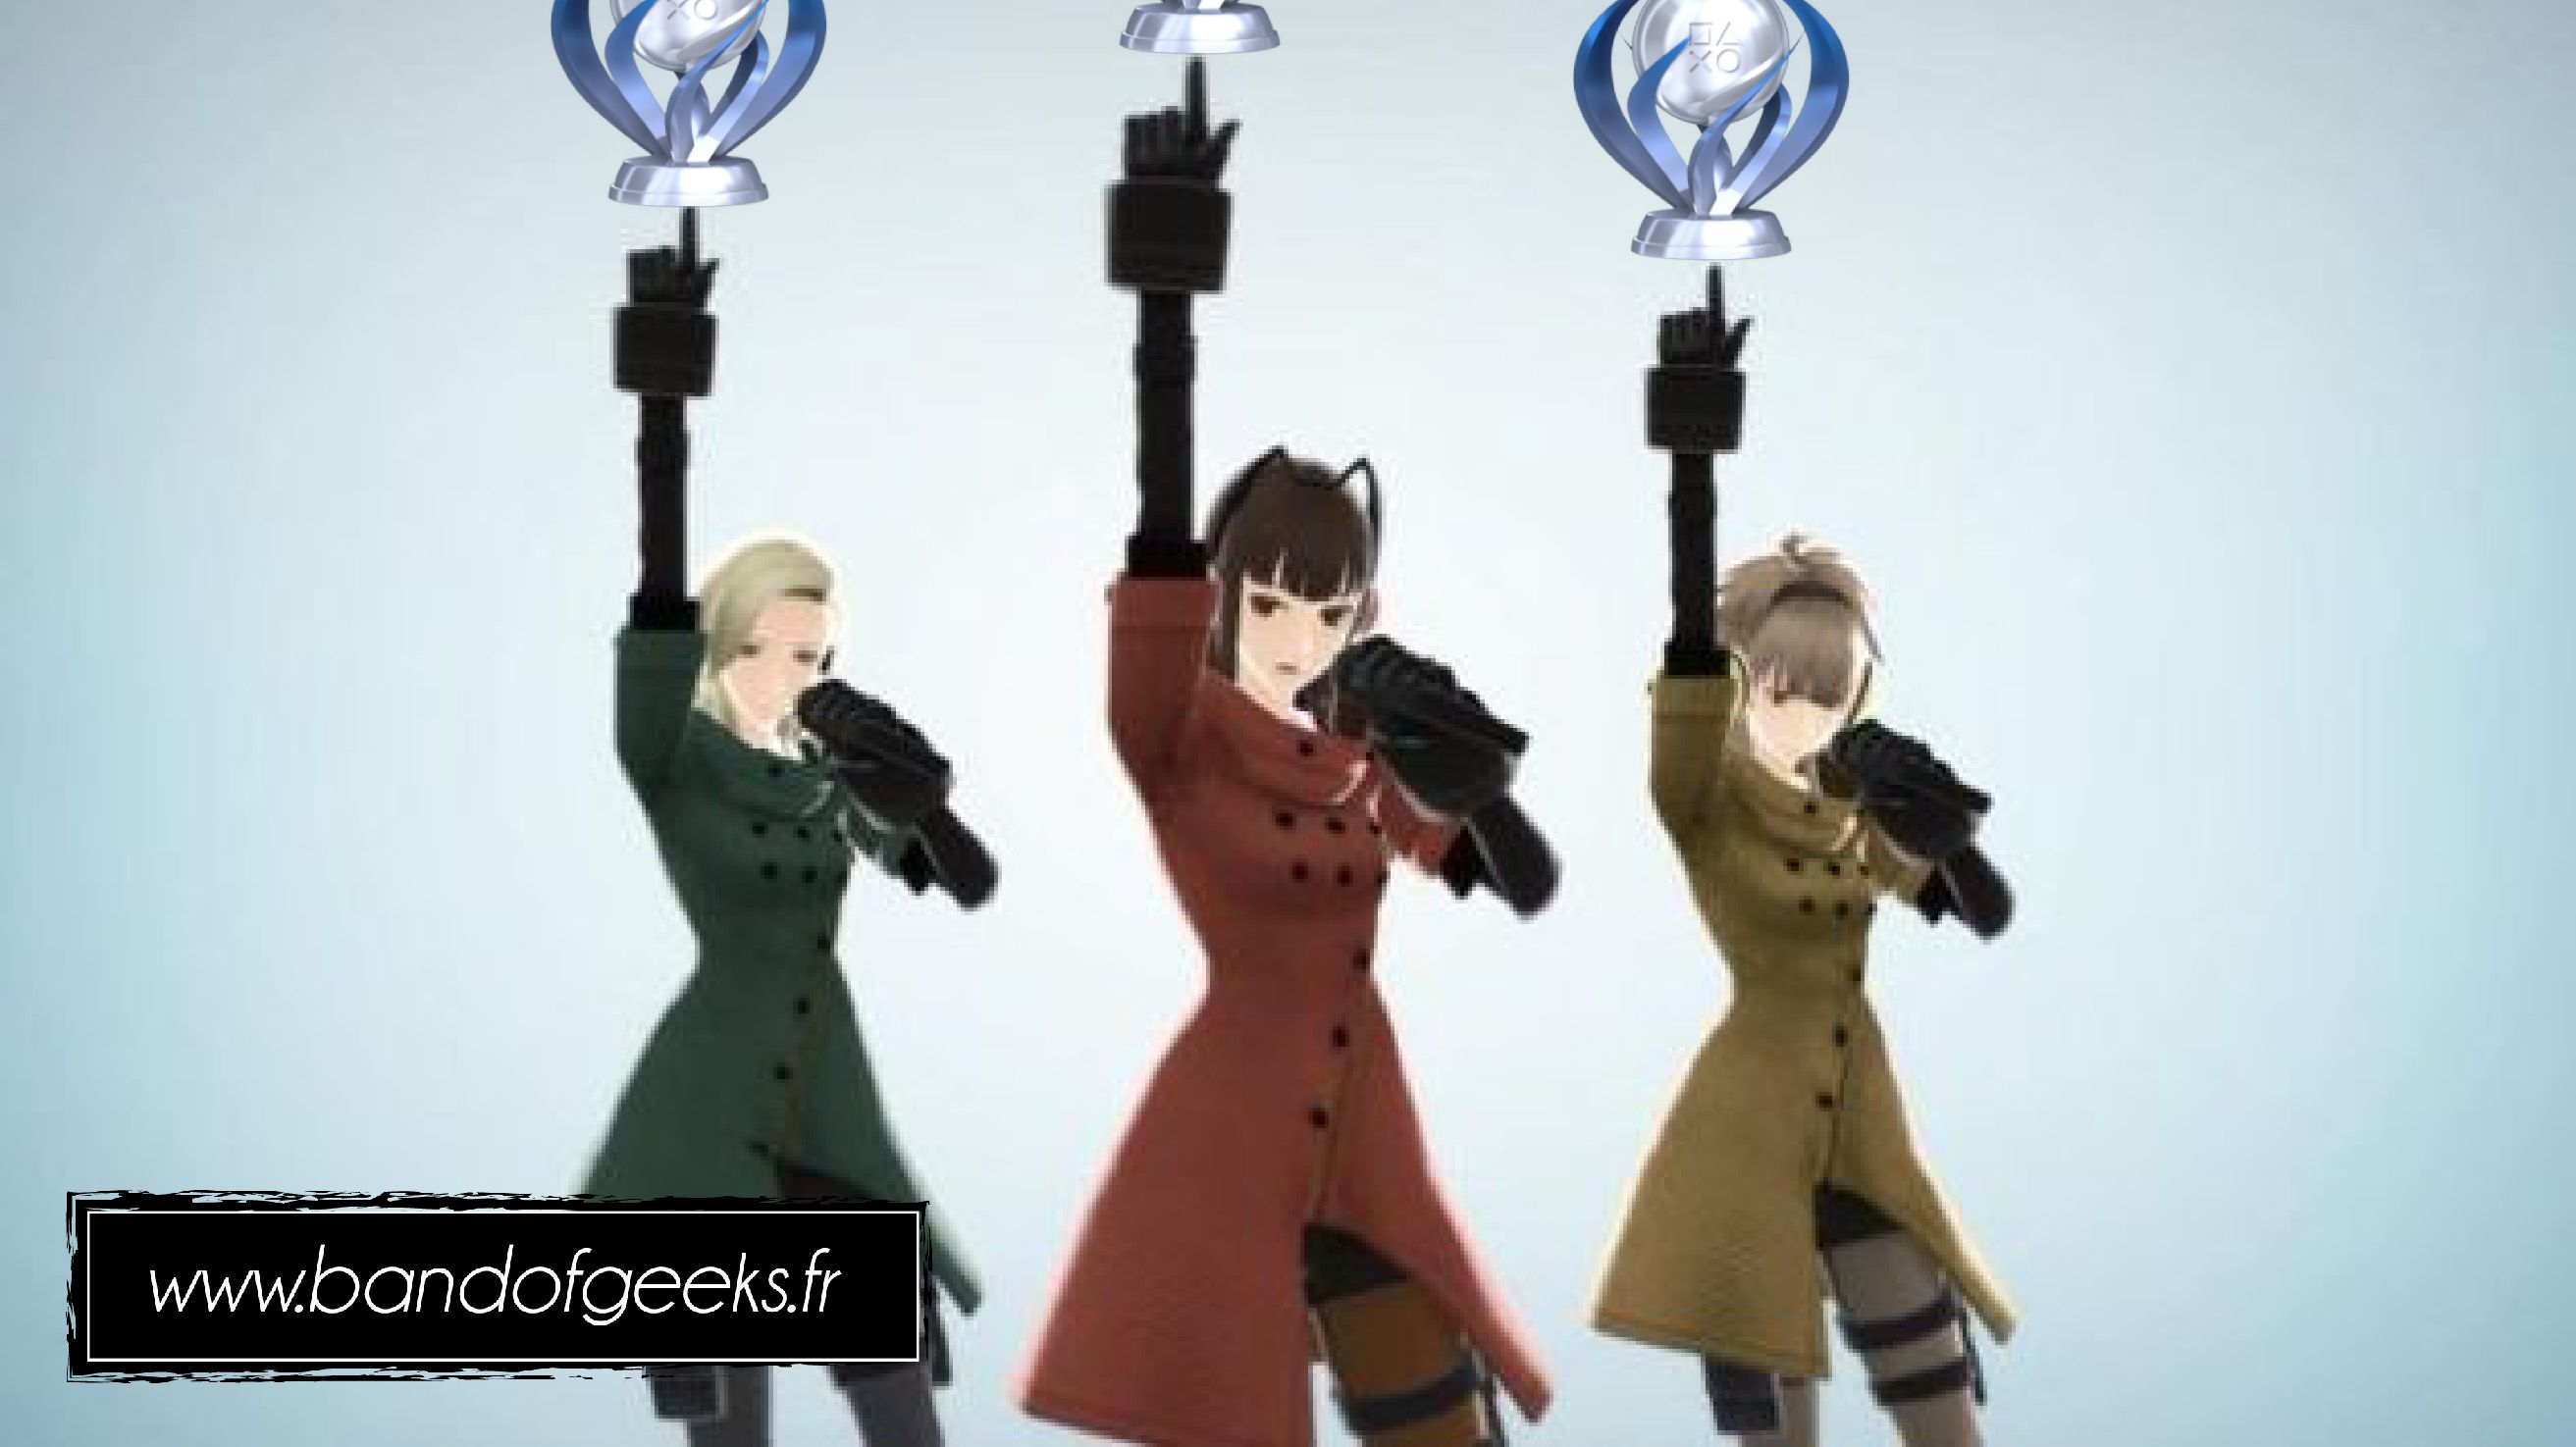 Trophée Platine Freedom Wars Band of Geeks (1)